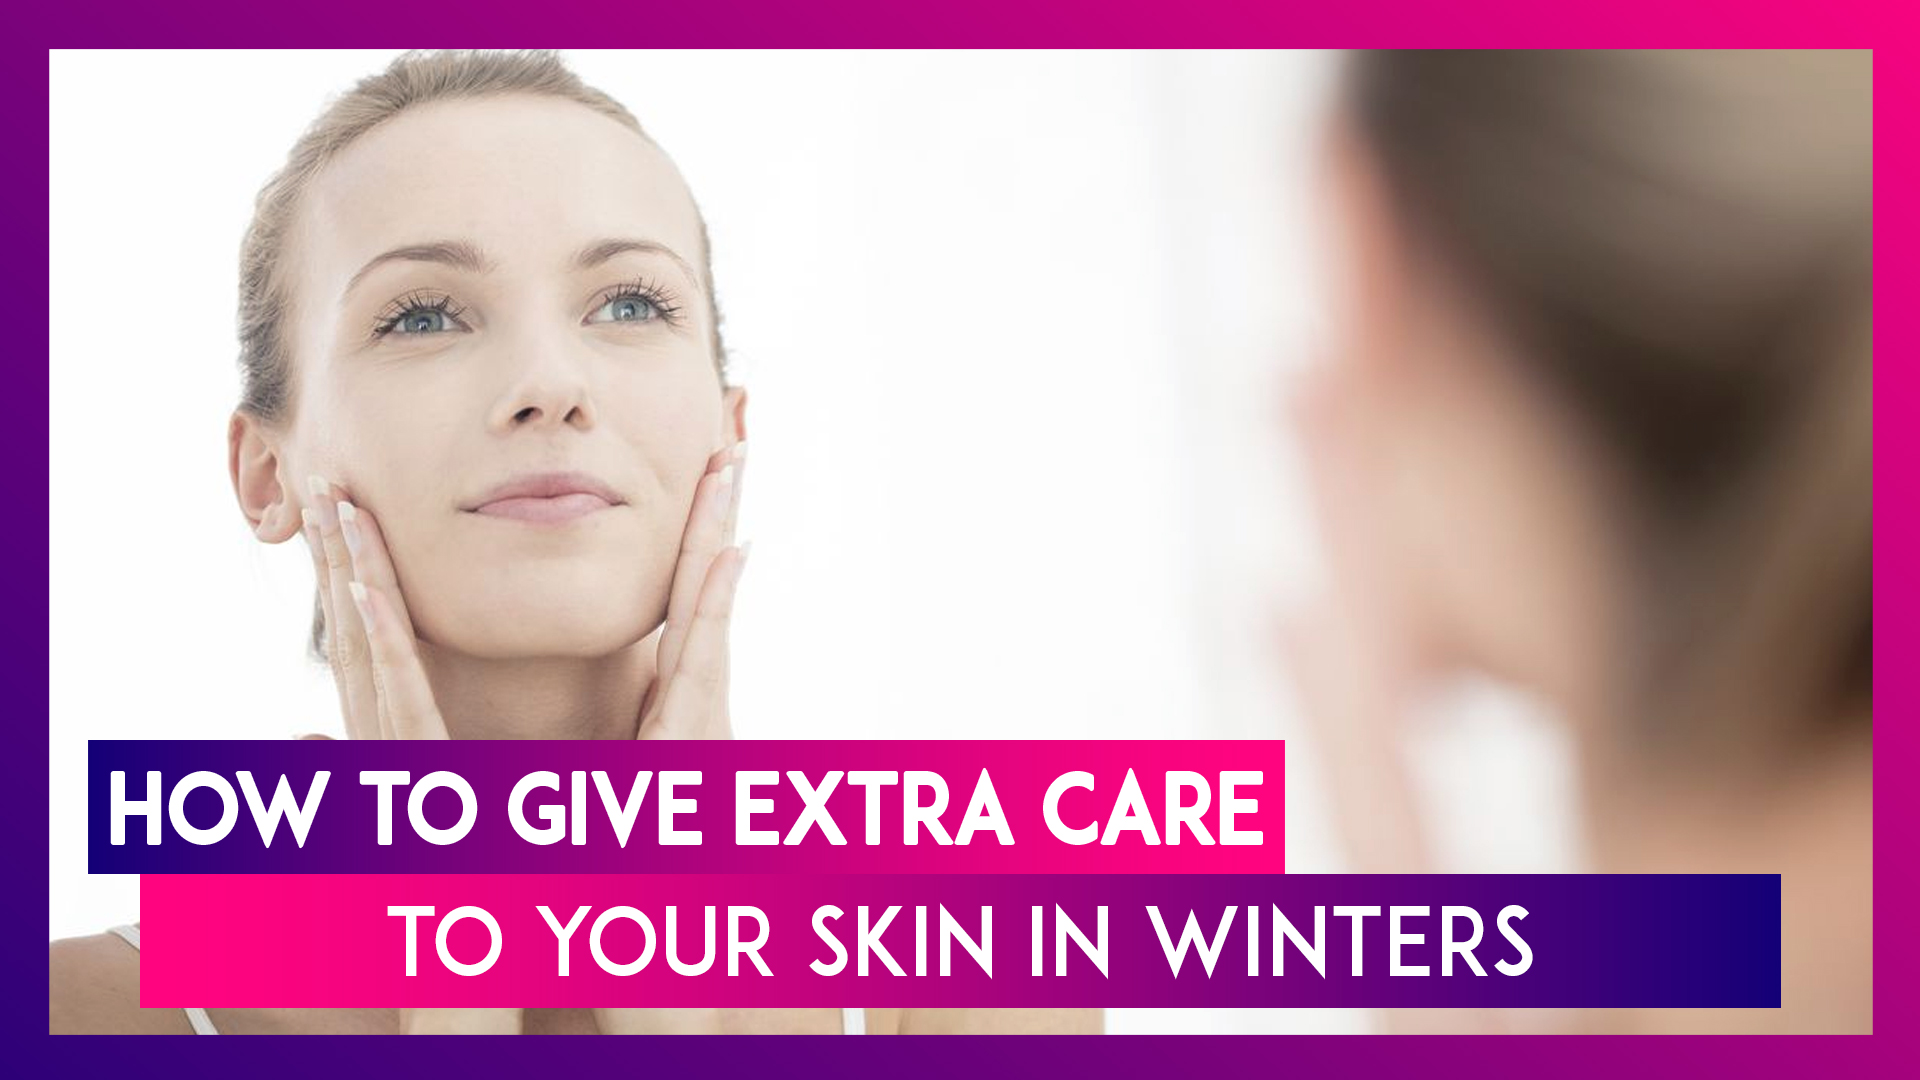 Tips And Tricks For Winter Skincare: Hydration, The Right Cream And More